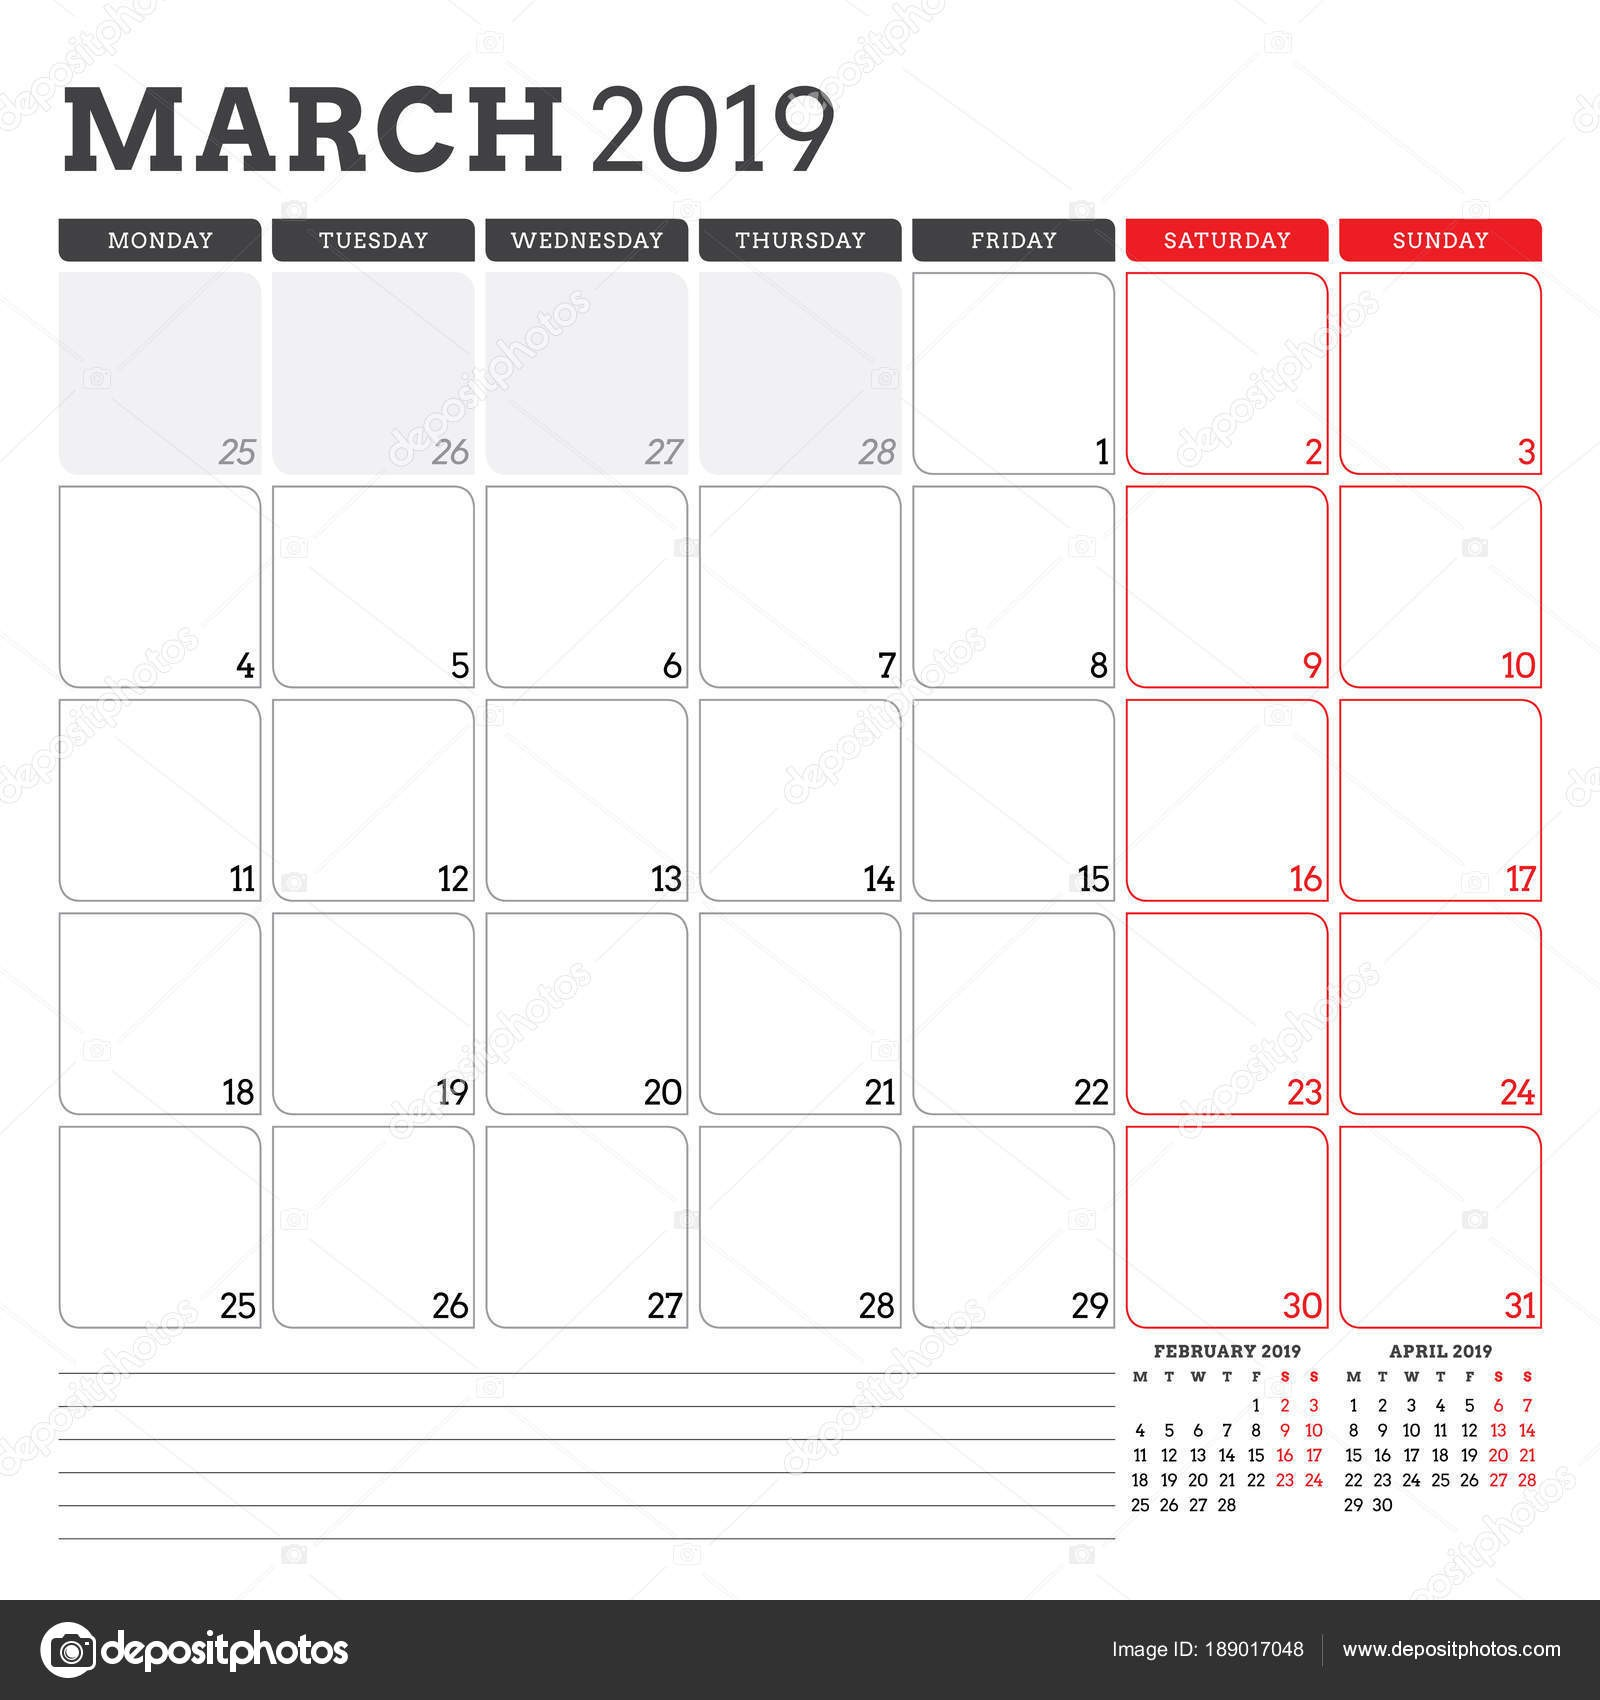 March Calendar 2019 Más Reciente Calendar Planner for March 2019 Week Starts On Monday Printable Of March Calendar 2019 Más Recientes March 2019 Wall Calendar Colorful Sketch Horizontal Template Letter